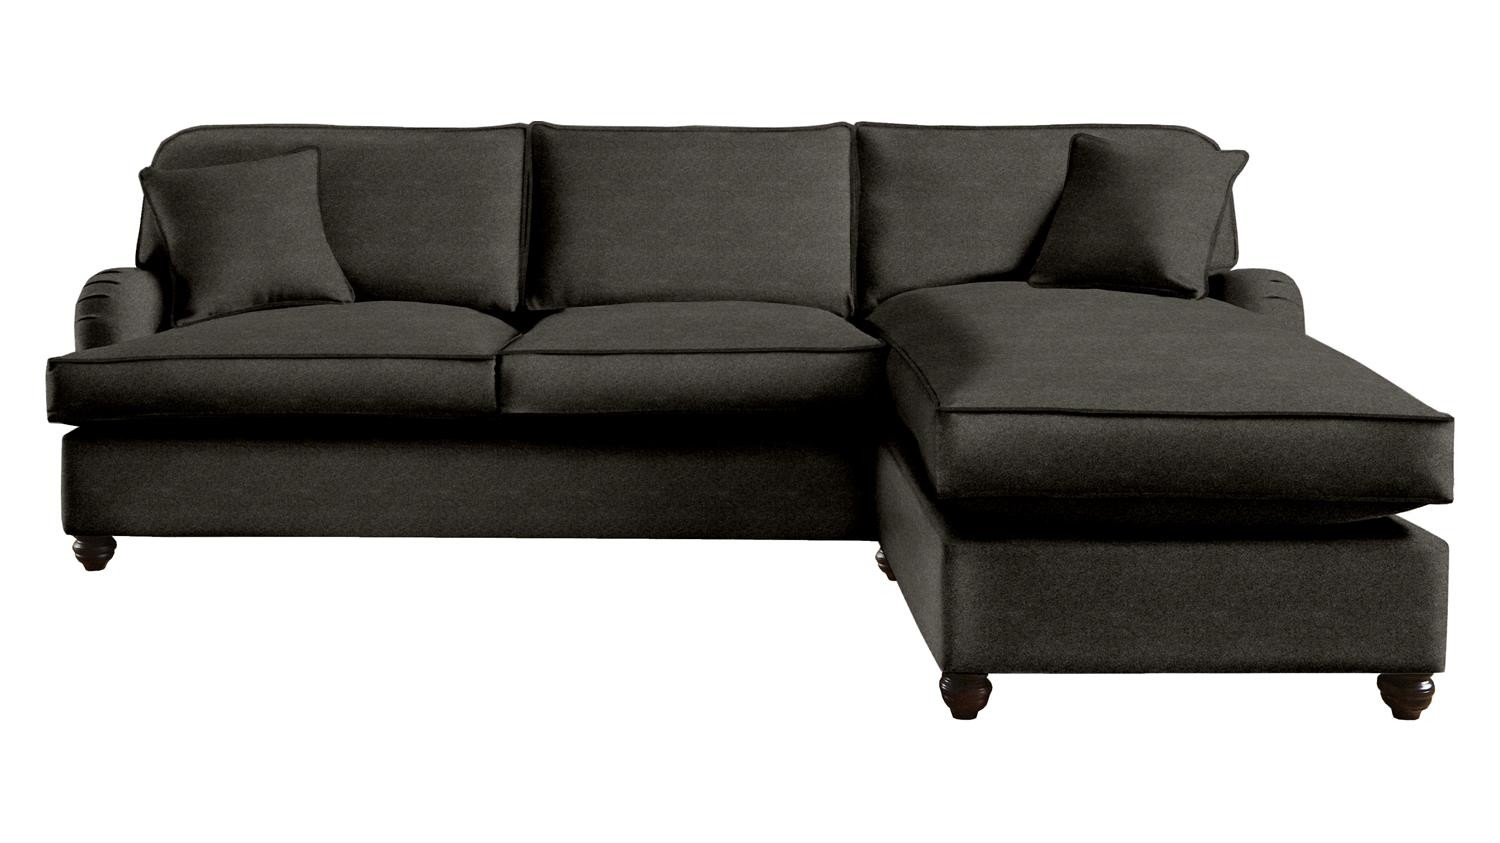 The Tidworth 5 Seater Chaise Storage Sofa Bed